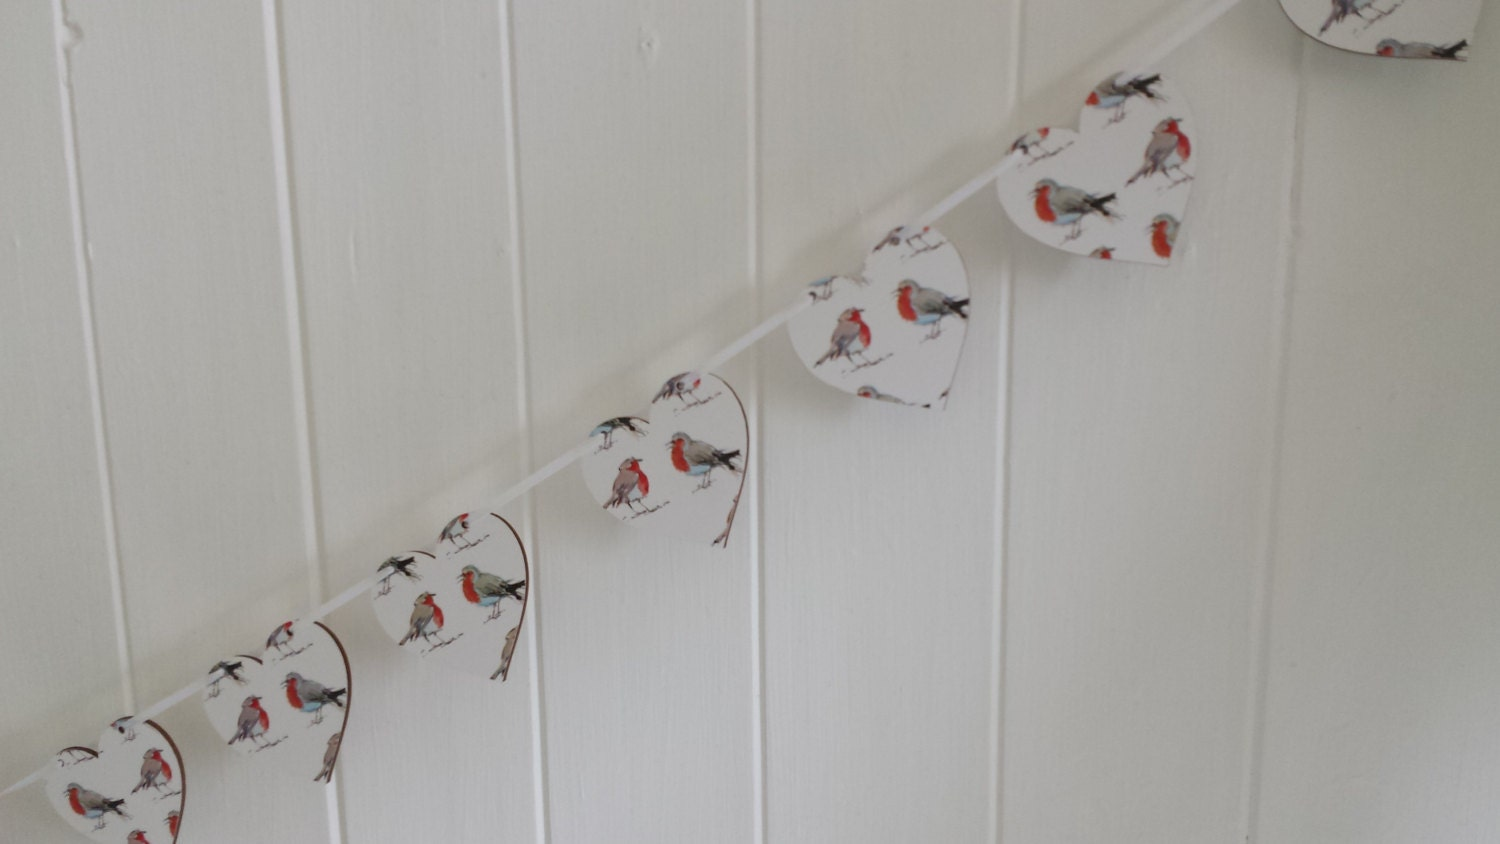 Hand made decoupaged wooden heart Christmas bunting featuring cheeky festive robins on a white background